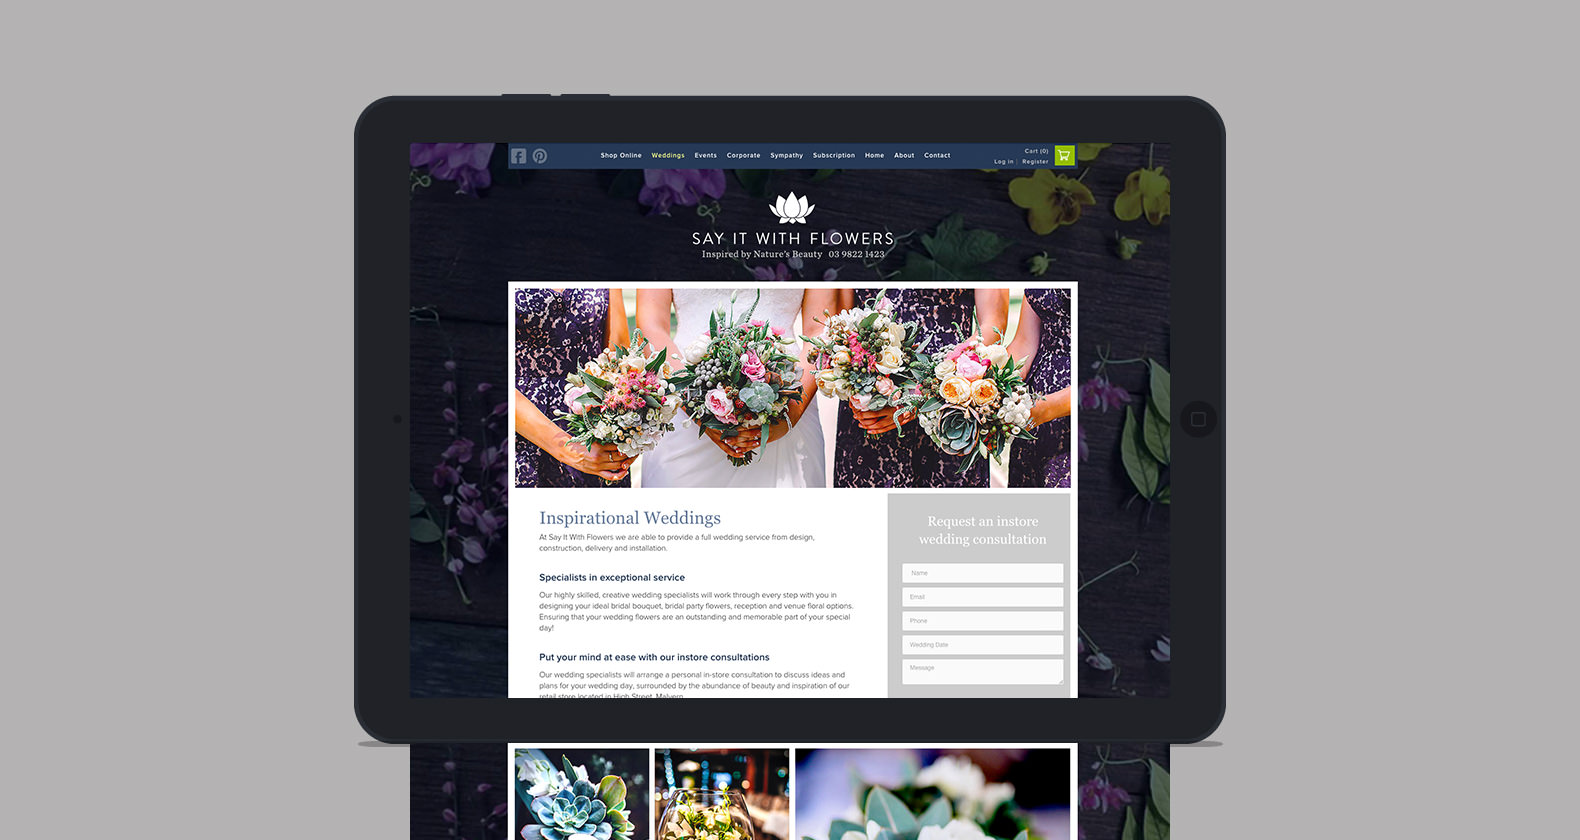 Say it with Flowers - website design